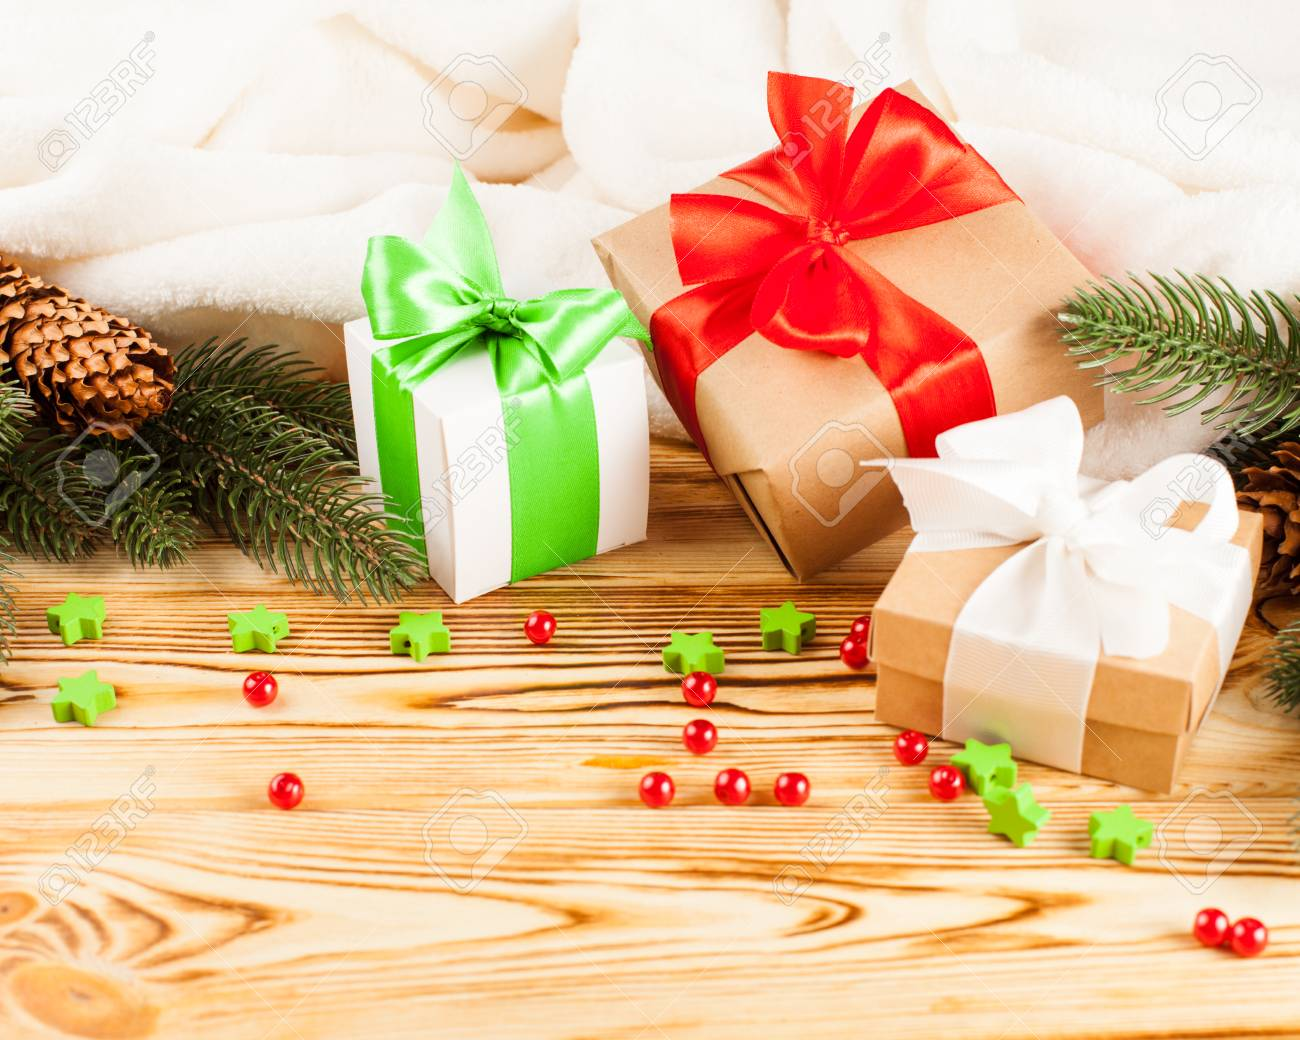 Craft Gift Boxes With Color Ribbon And Bow Green Christmas Tree Stock Photo Picture And Royalty Free Image Image 87986925